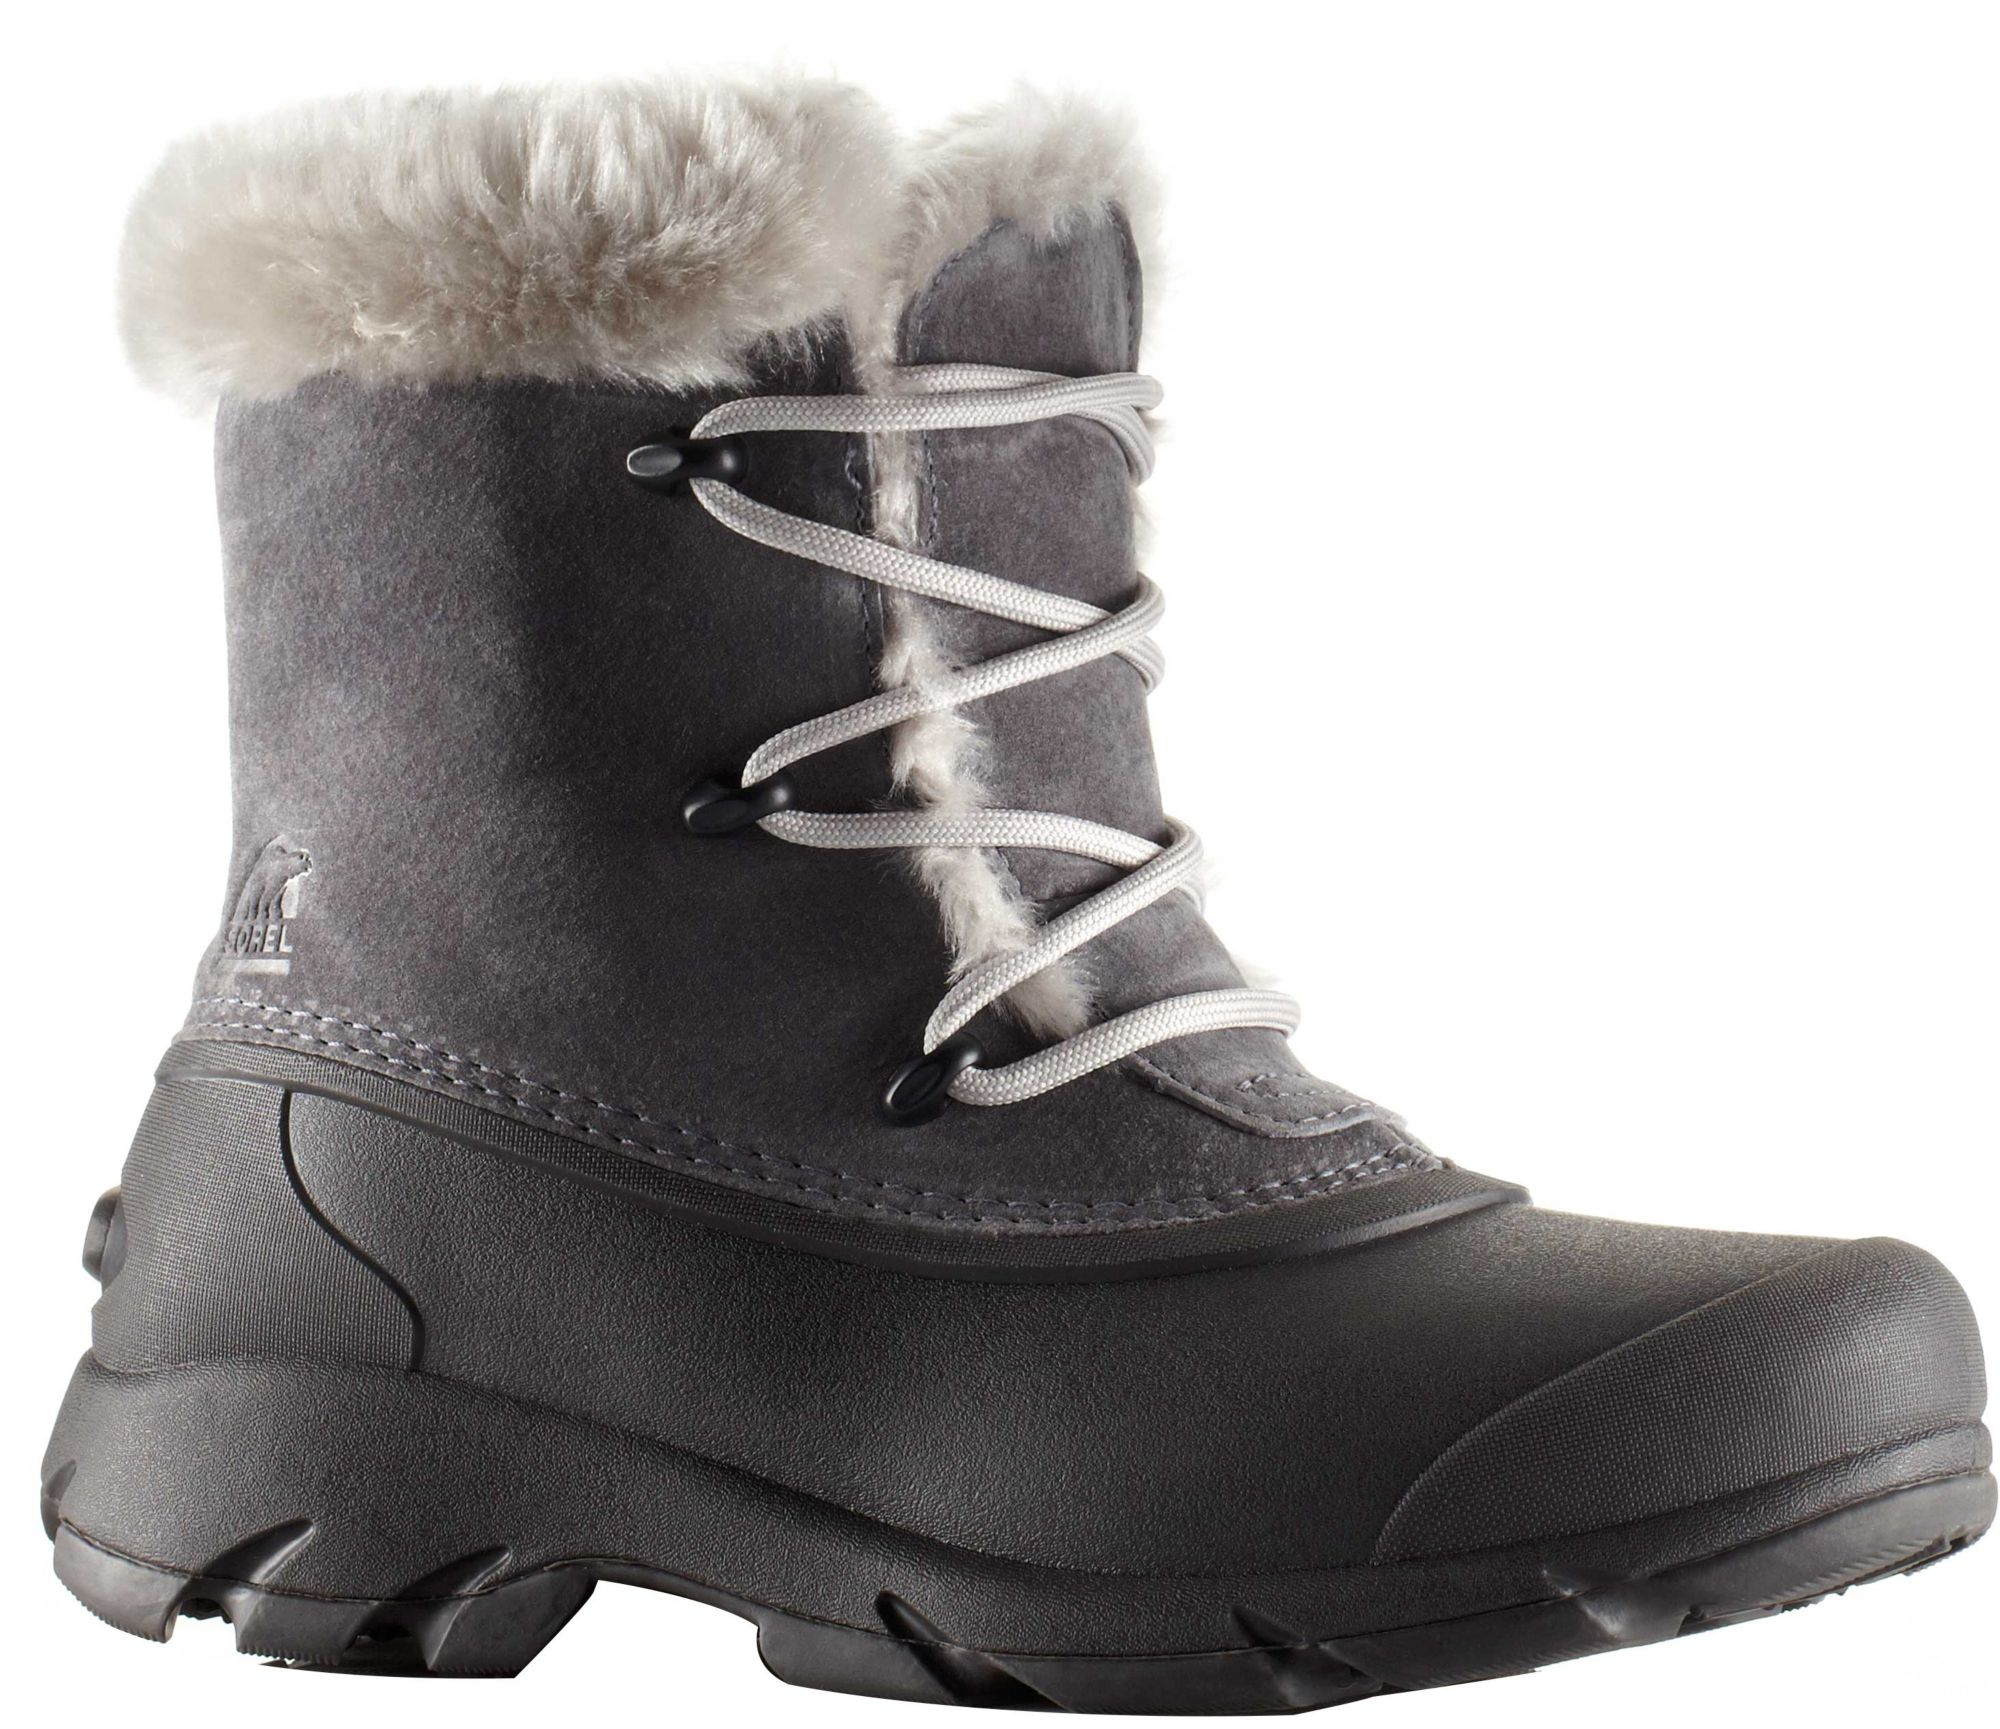 11 days ago · Published: 6 minutes ago / Deal expires in Dec 11, / Buy Now Buy Now Sorel takes 55% off a selection of women's and kids' shoes via coupon code